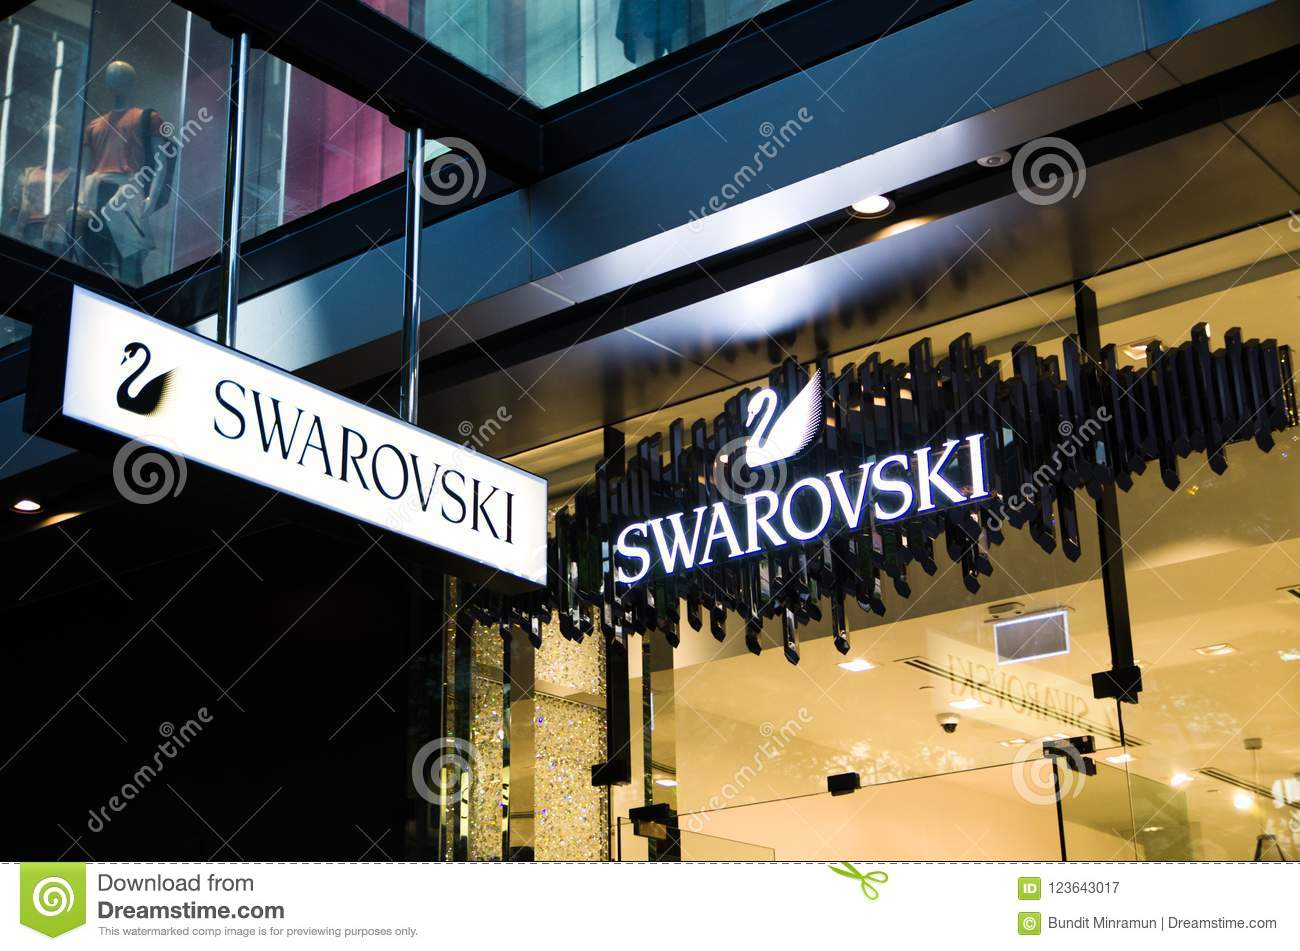 Swarovski Austrian producer of crystal store, the image shows the logo of it, located in Sydney CBD.